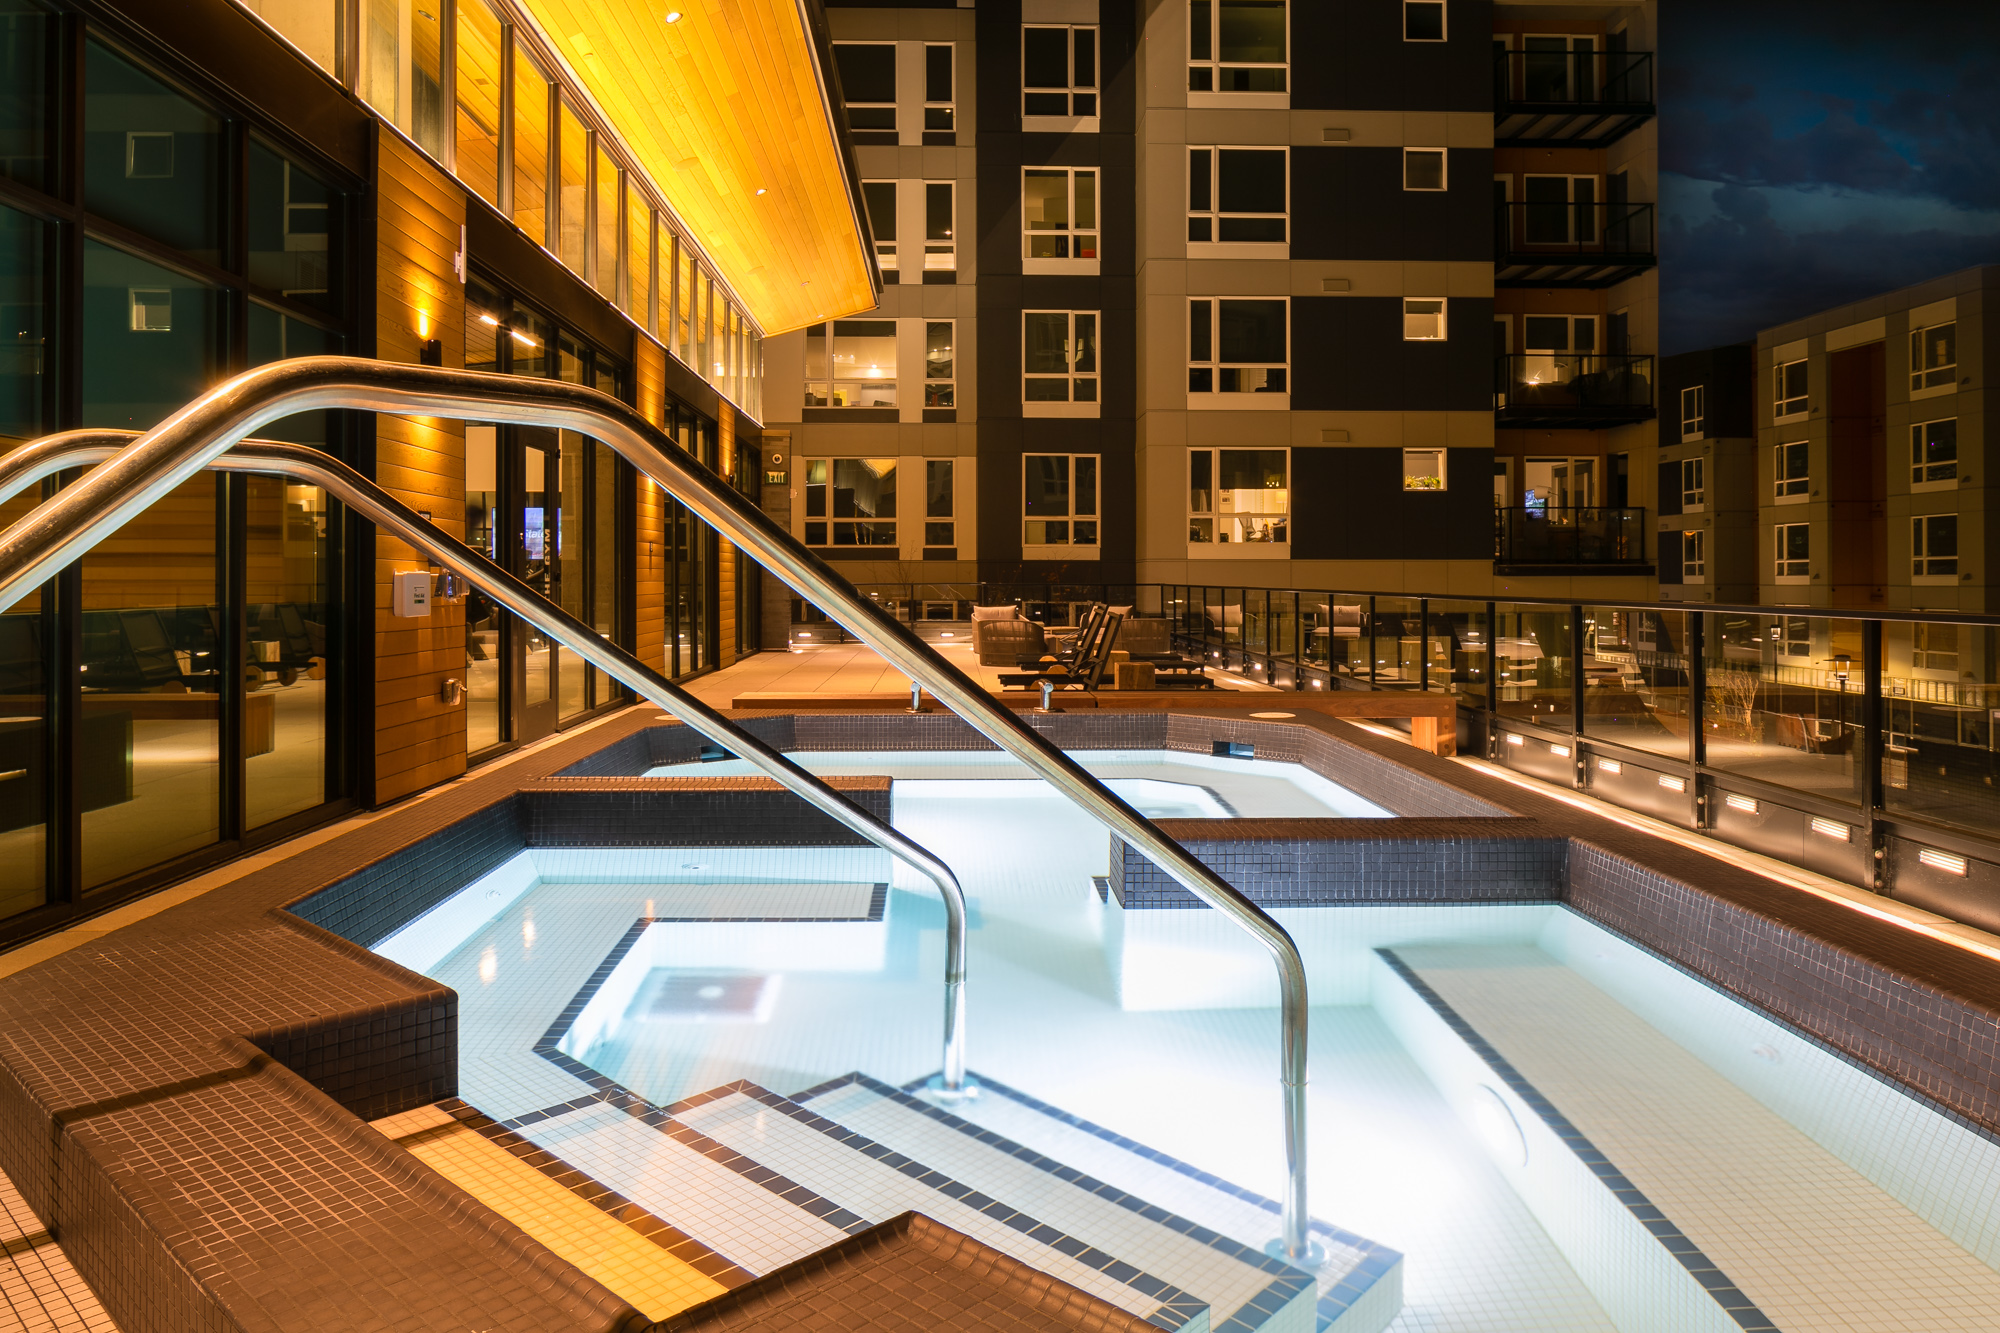 Exterior of large tiled spa pool with apartment complex in background